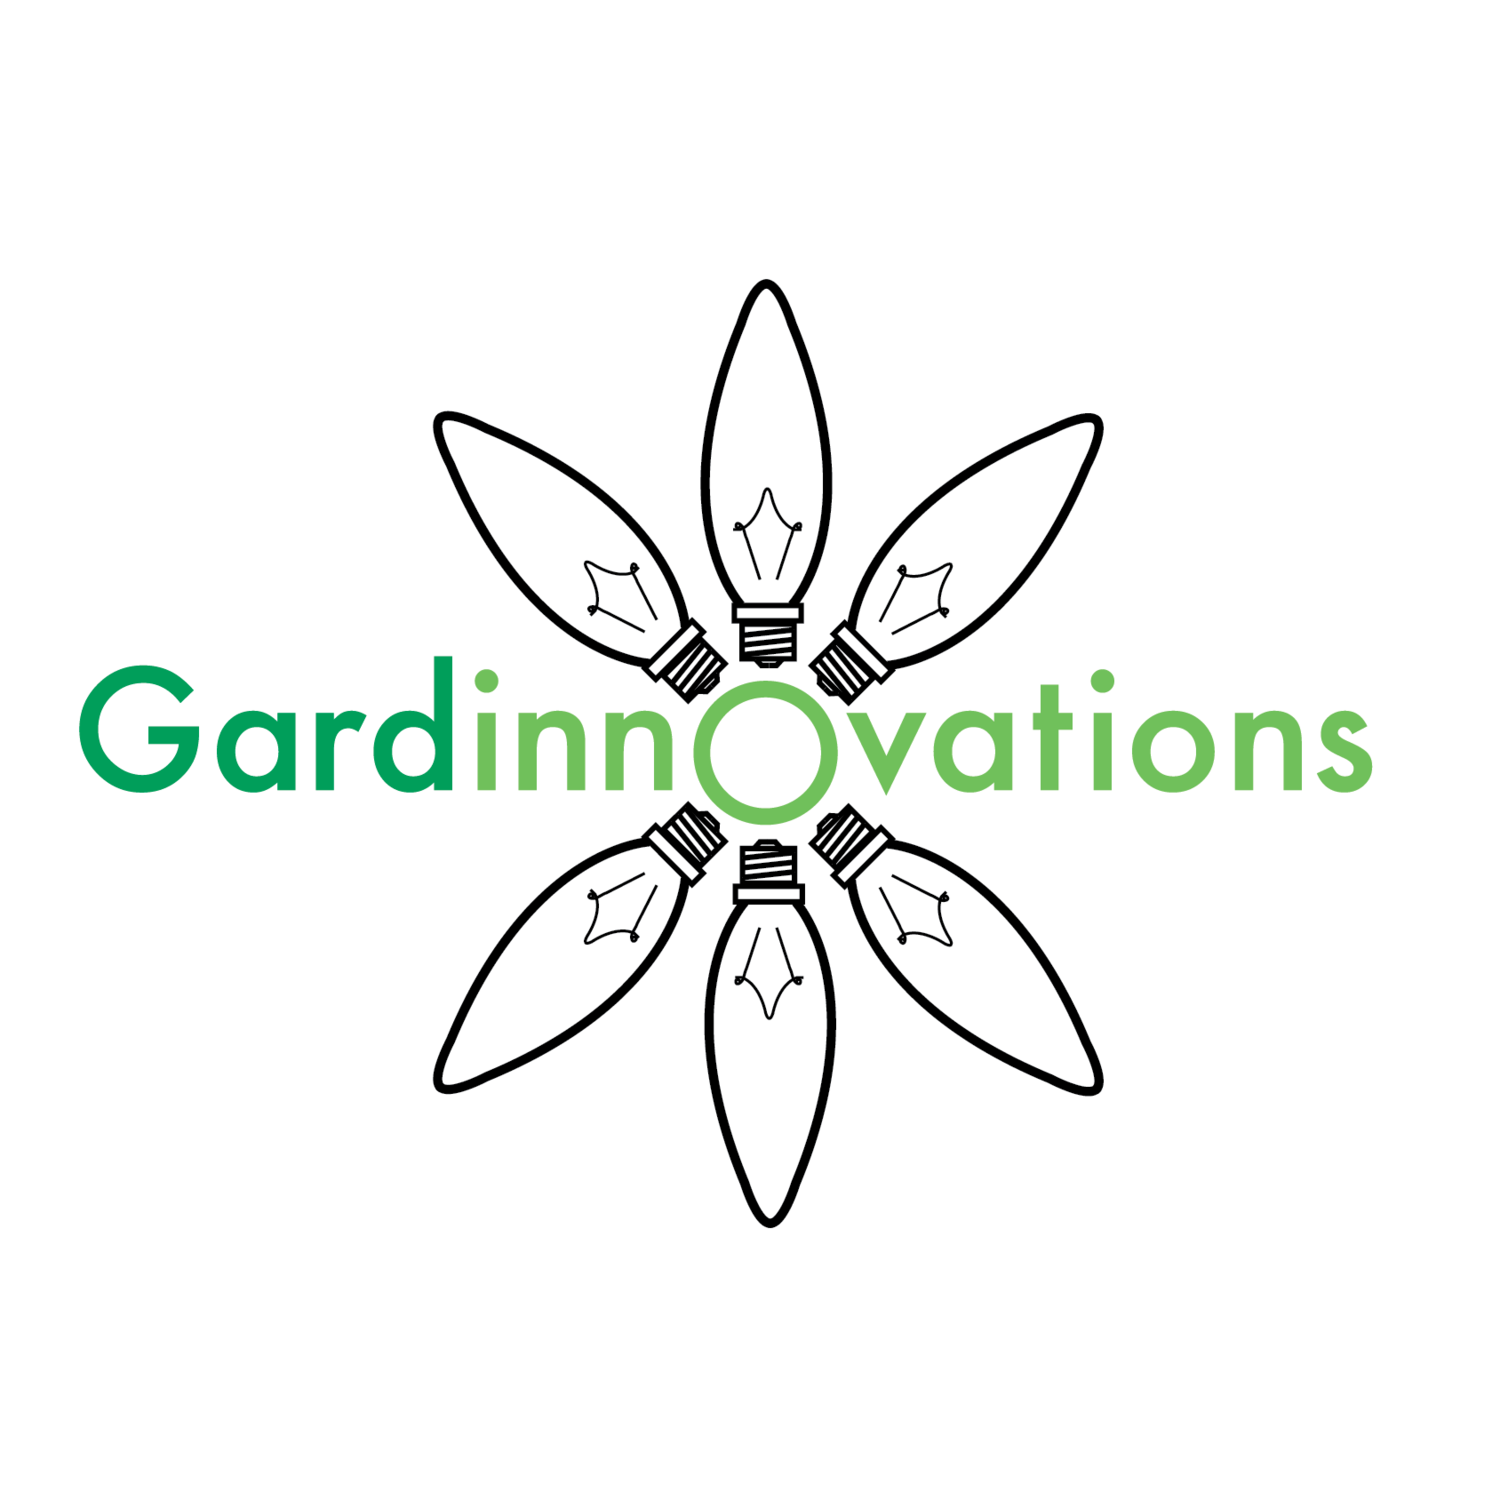 Gardinnovations